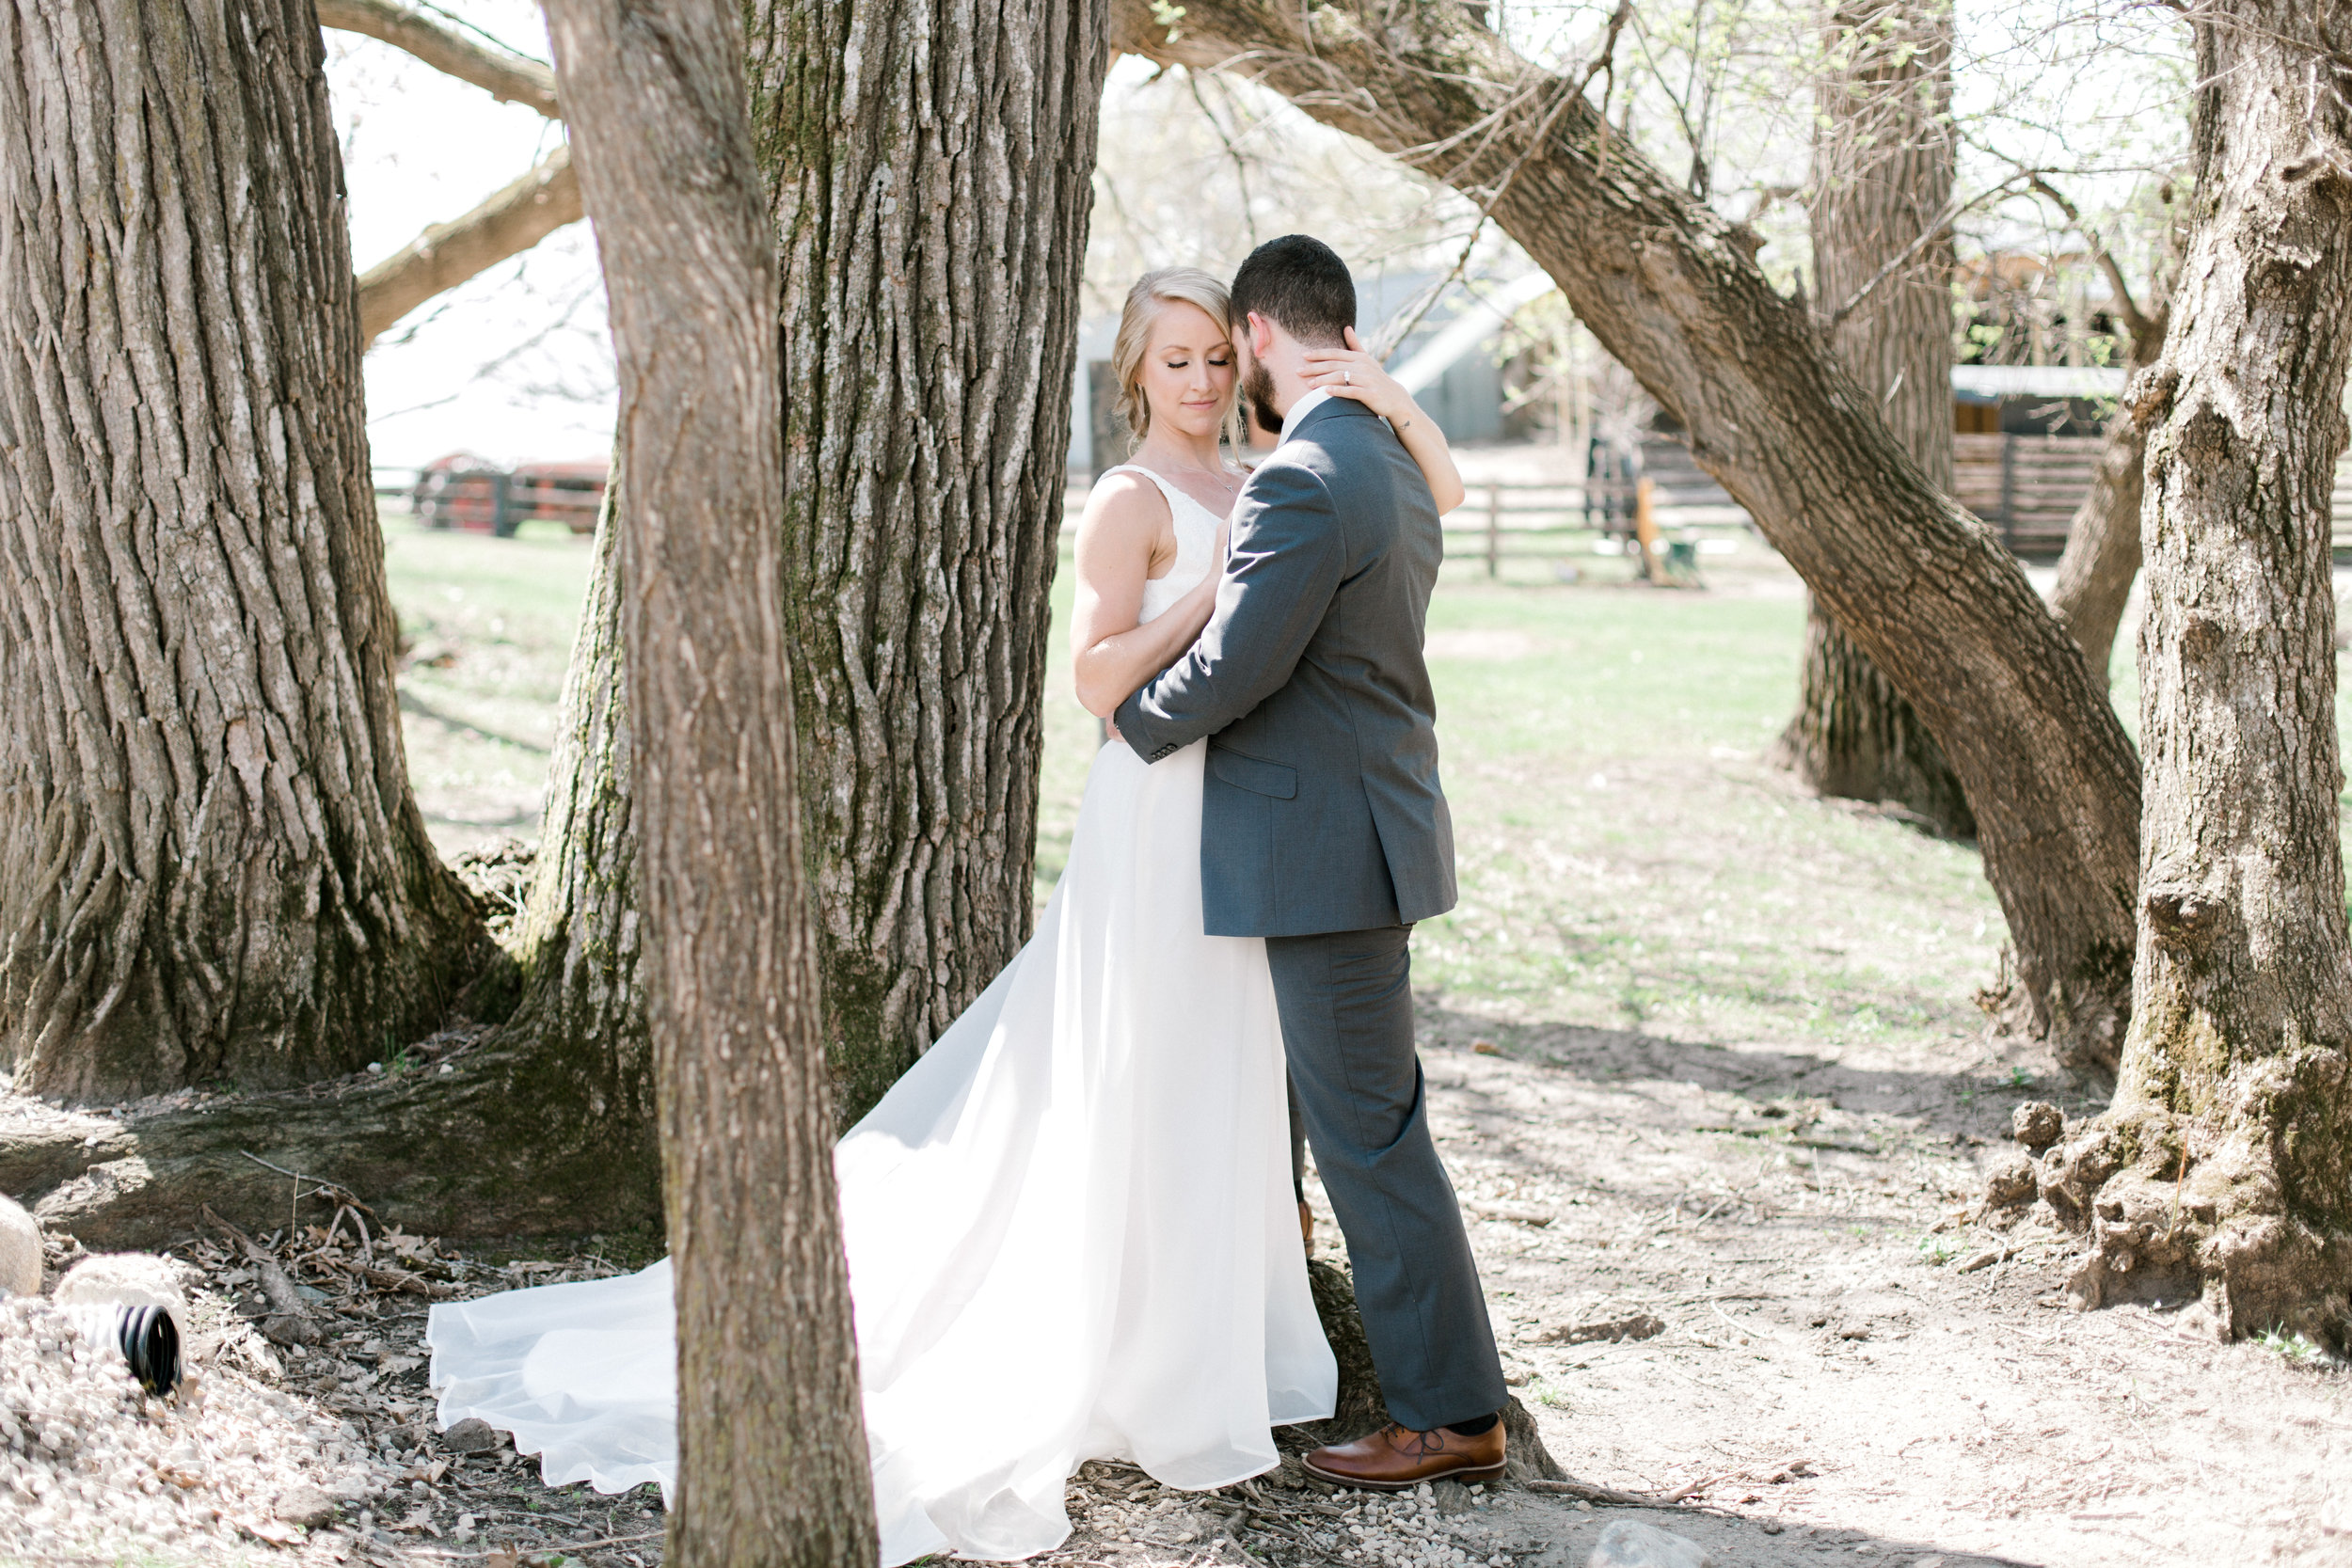 Lauren Baker Photography weddings Golden Oak Farm